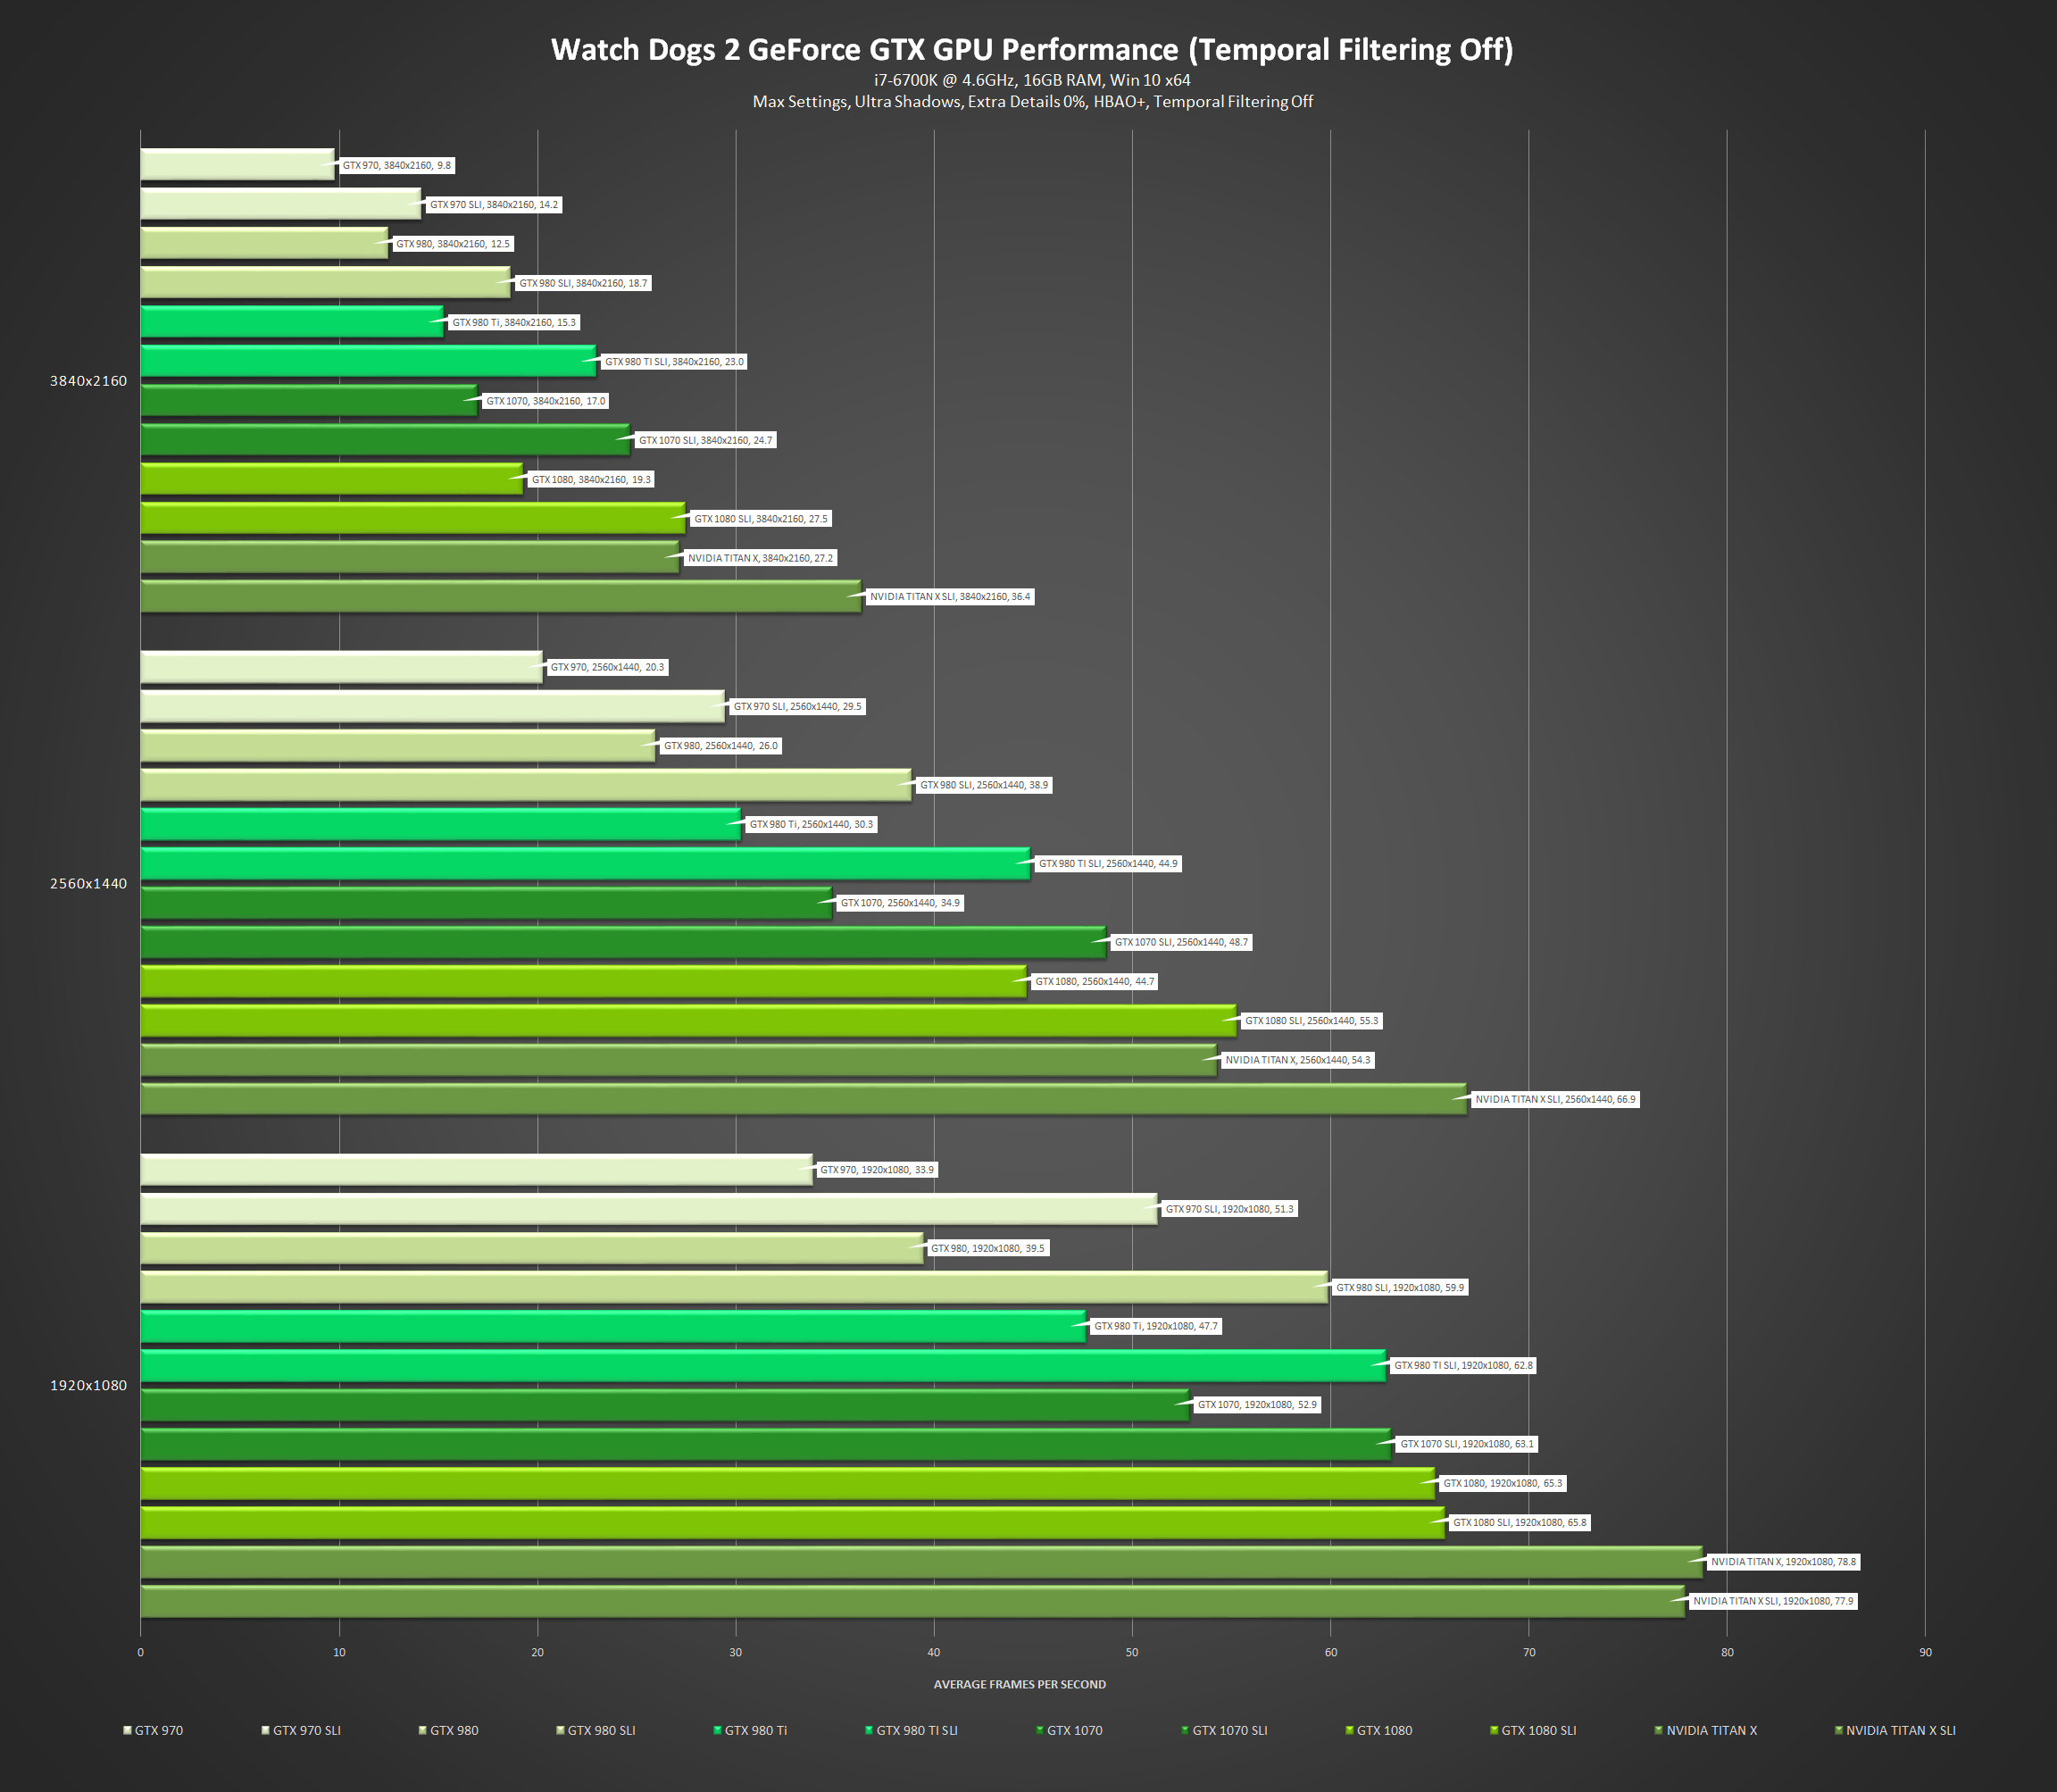 Watch Dogs 2 PC Performance Benchmarks For NVIDIA and AMD GPUs